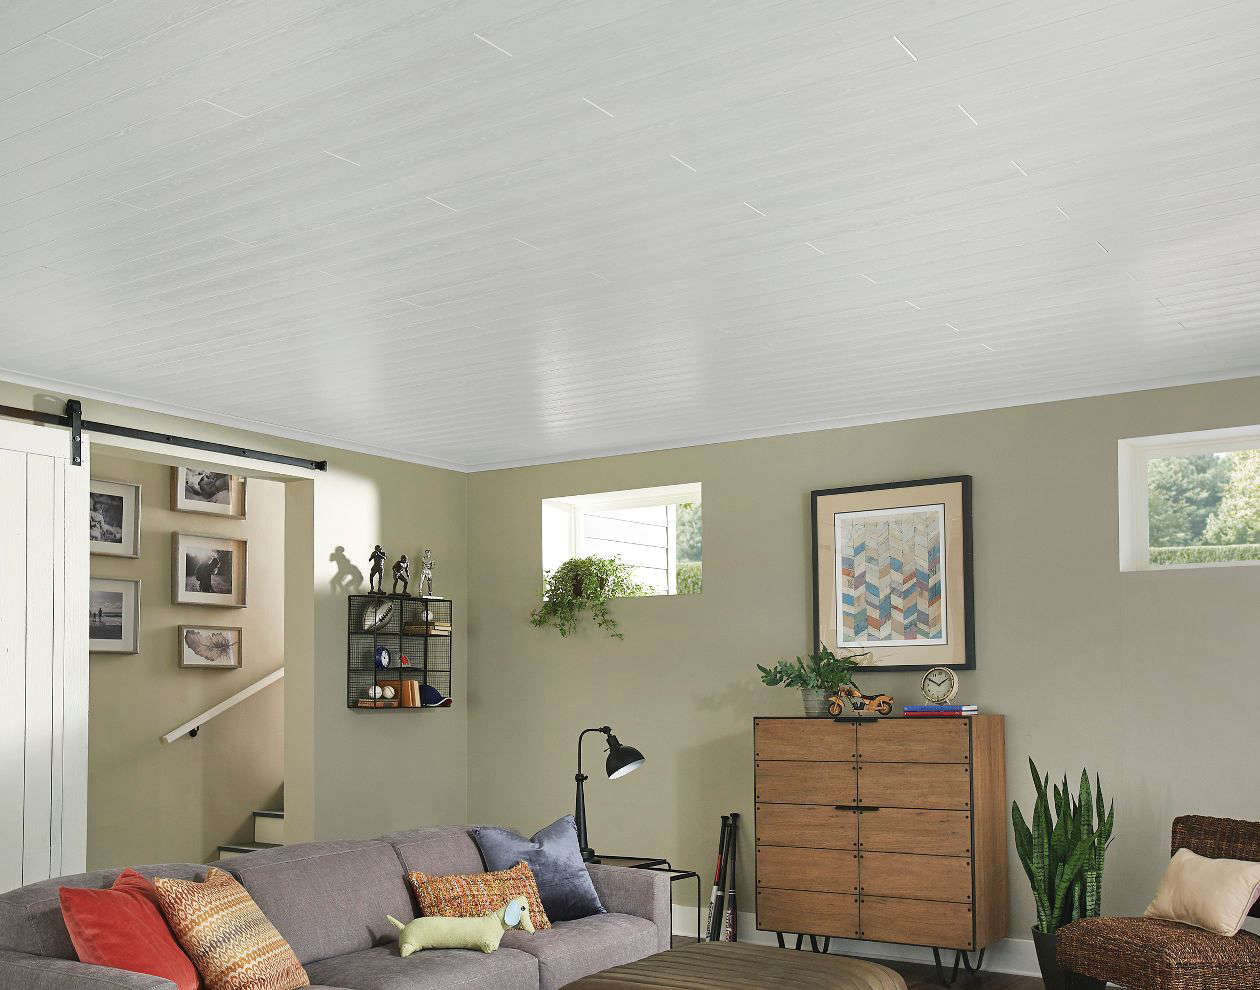 Remodeling Hack: An Easy (and Affordable) Way to Update Your Basement